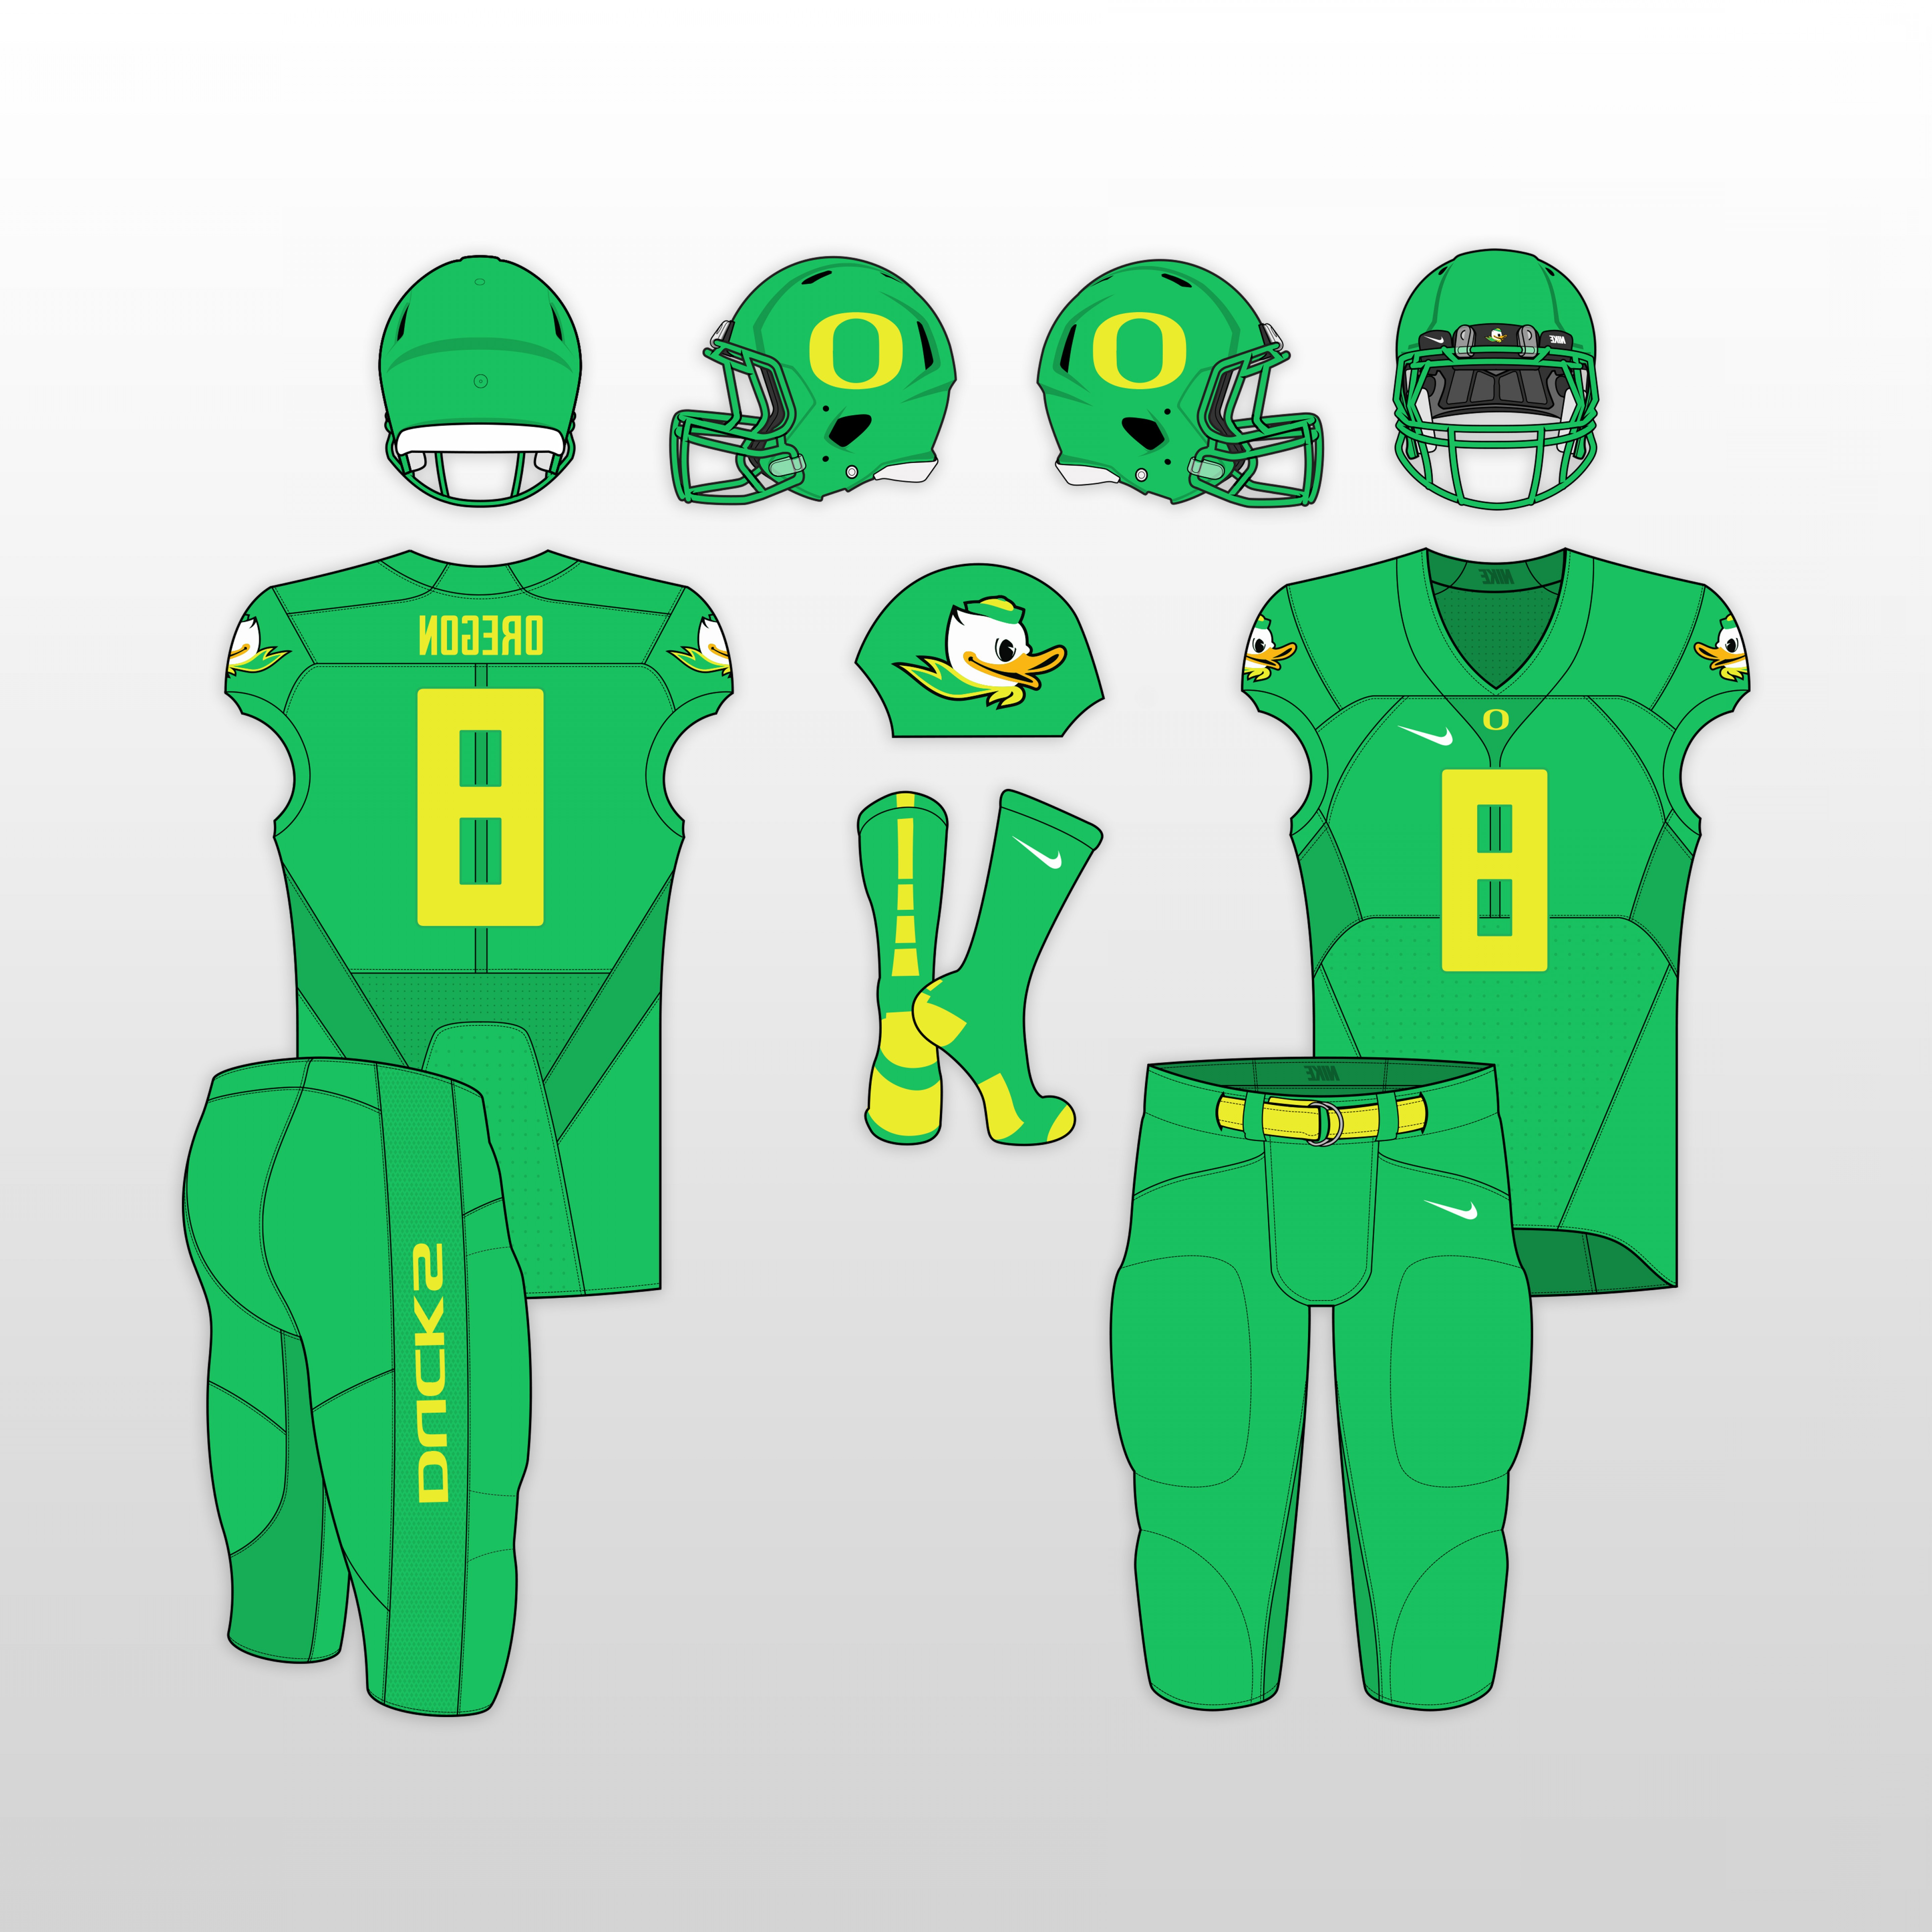 NFL Vector Images In Illustrator: Nike Mach Speed Uniform Template Illustrator